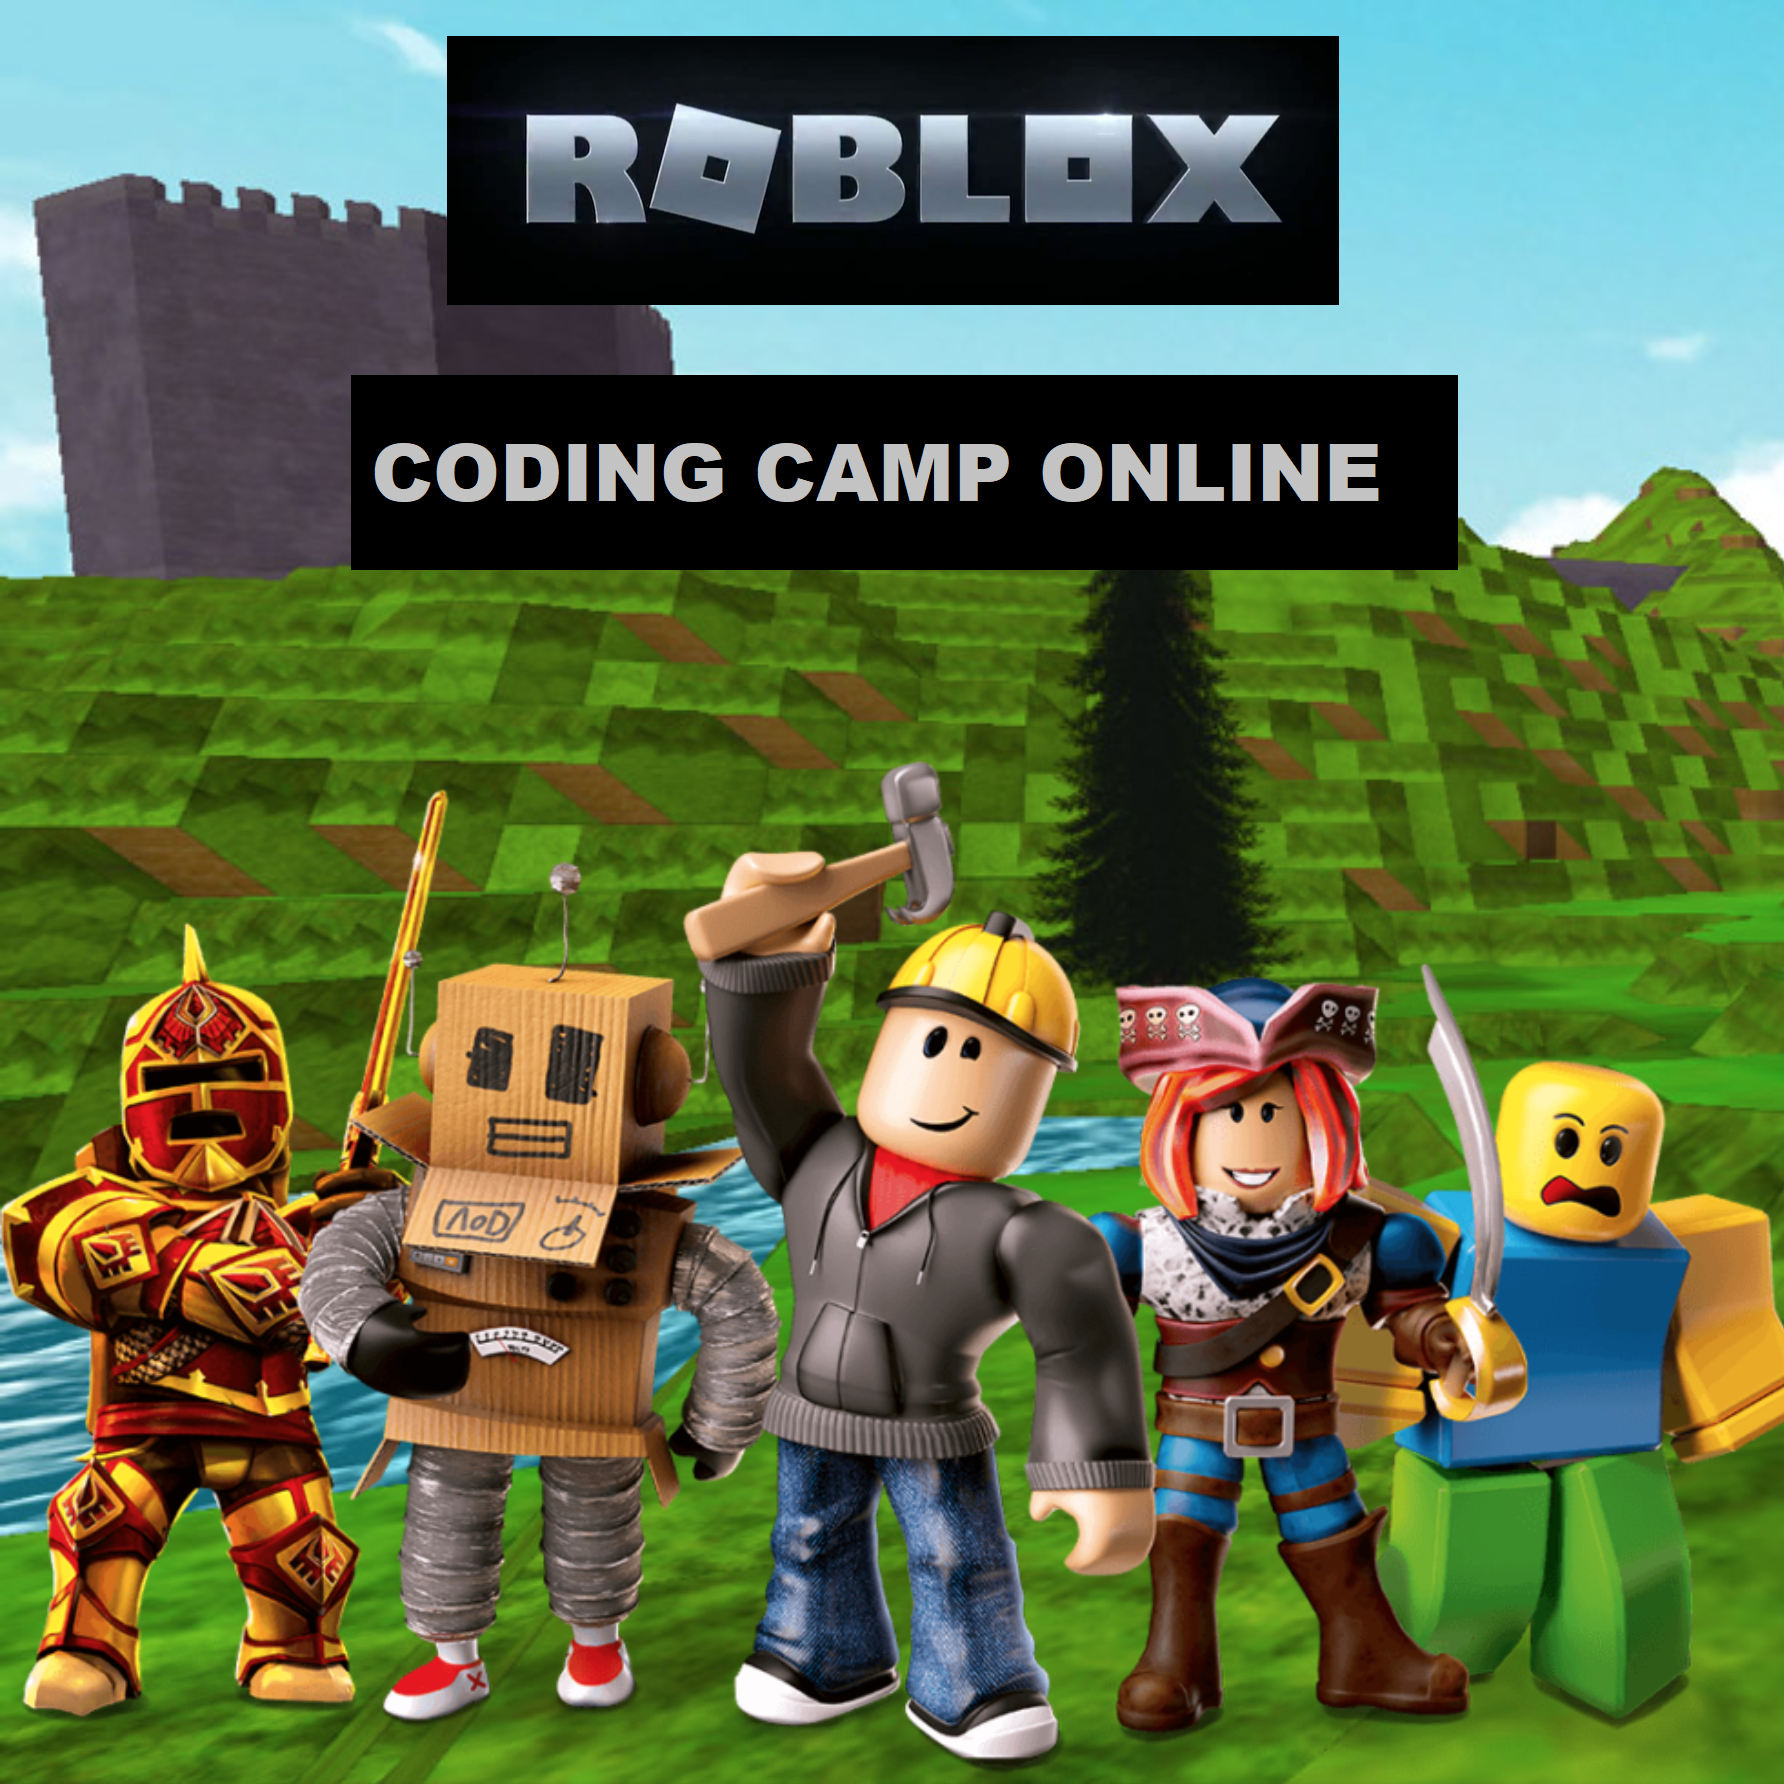 Roblox-Introductory